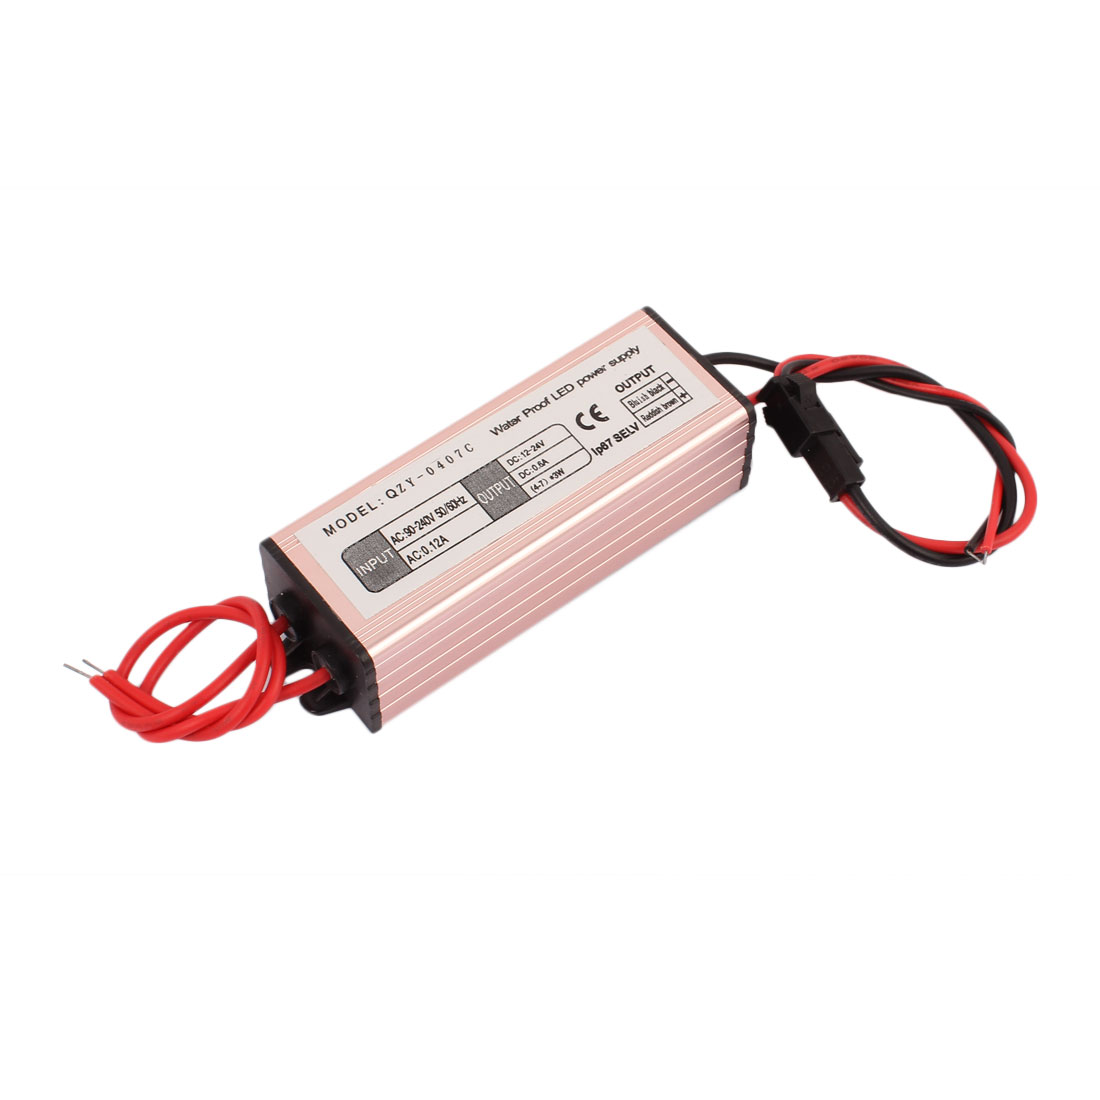 AC 90-240V 0.12A to DC 12-24V 0.6mA (4-7)X3W LED Driver Power Supply Converter Adapter